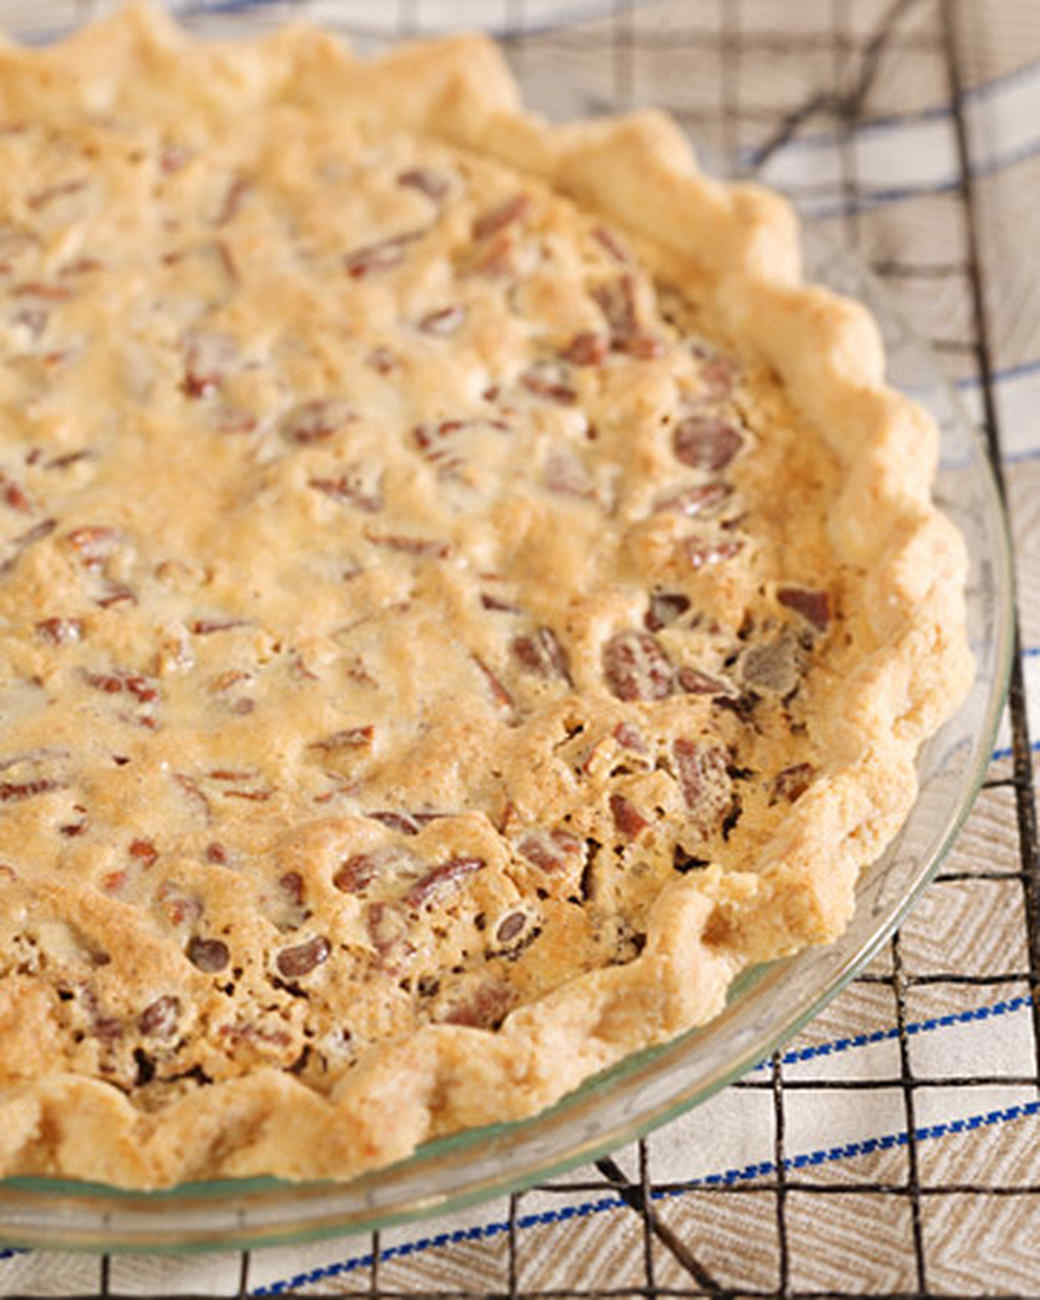 Our best kentucky derby inspired recipes for the big race martha our best kentucky derby inspired recipes for the big race martha stewart forumfinder Image collections